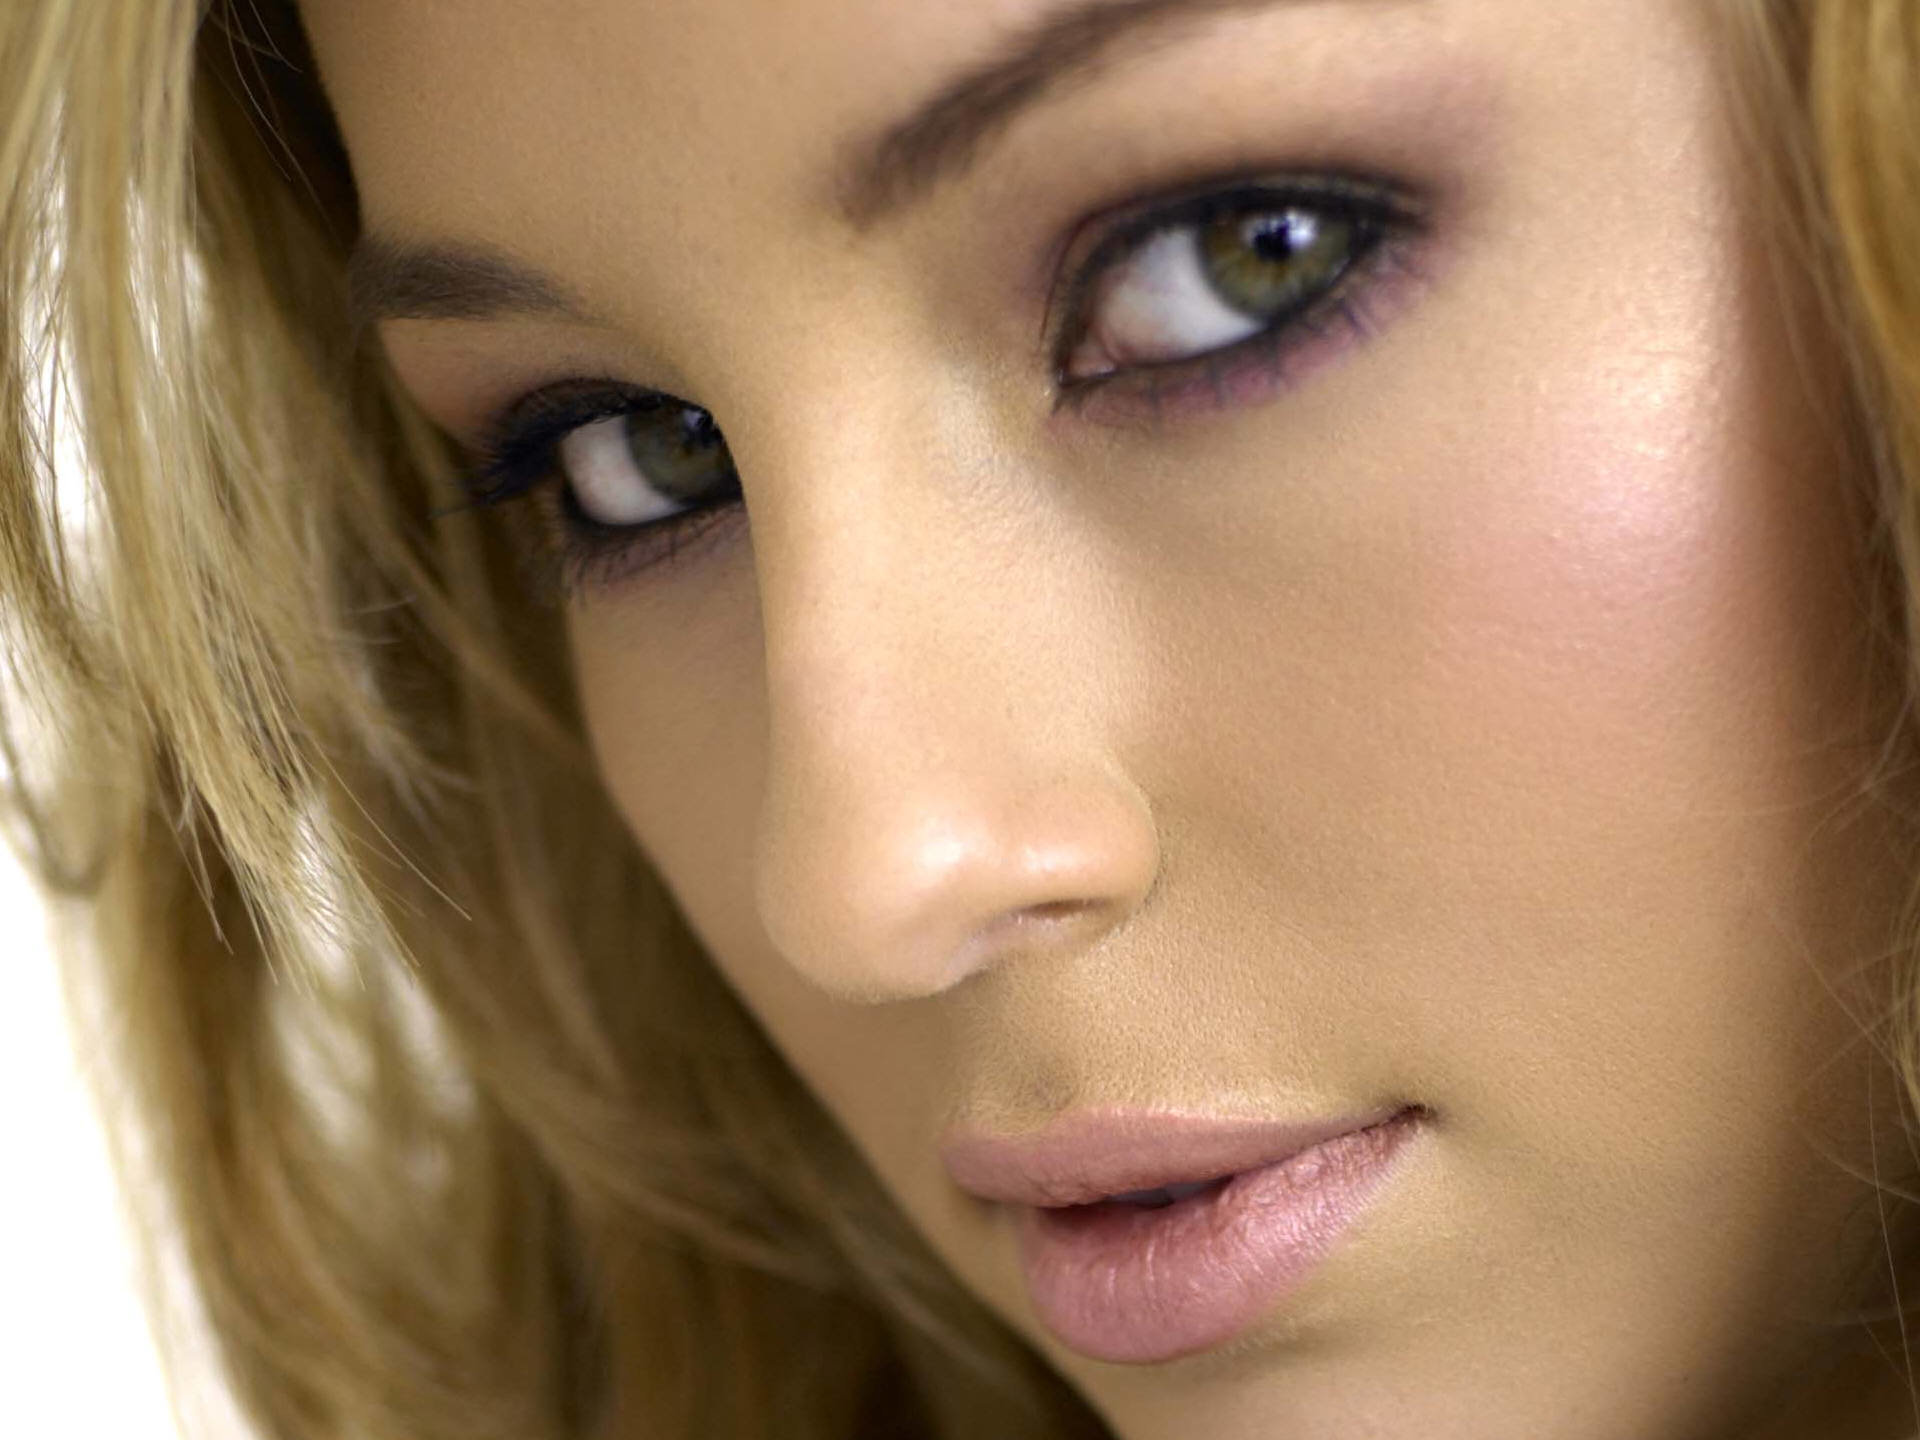 Free Keeley Hazell high quality wallpaper ID:34278 for hd 1920x1440 desktop